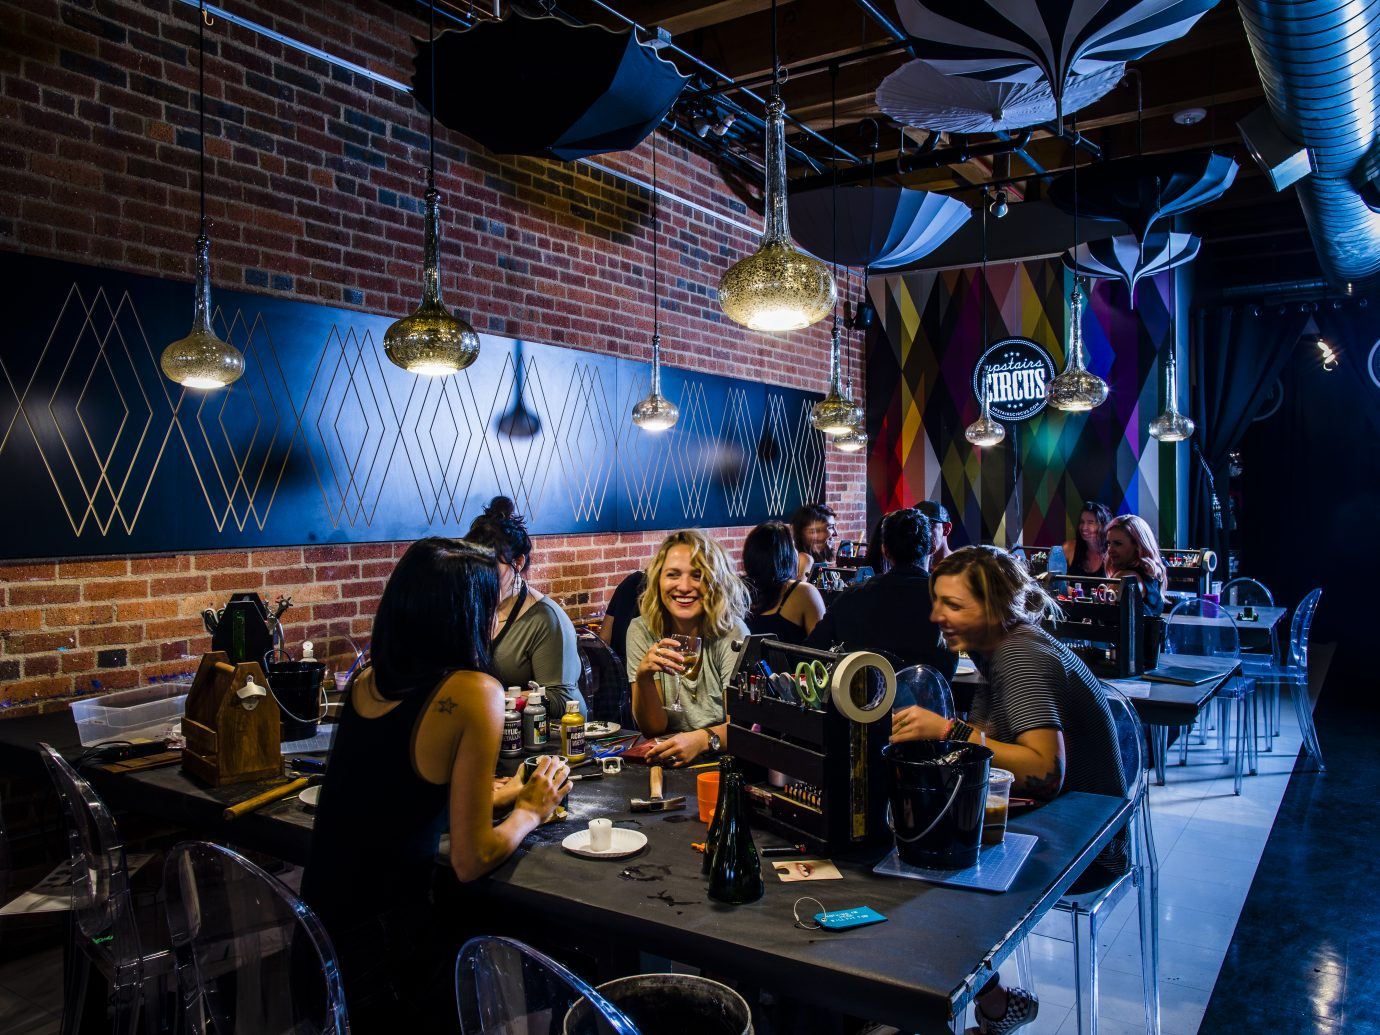 People drinking and crafting at Upstairs Circus